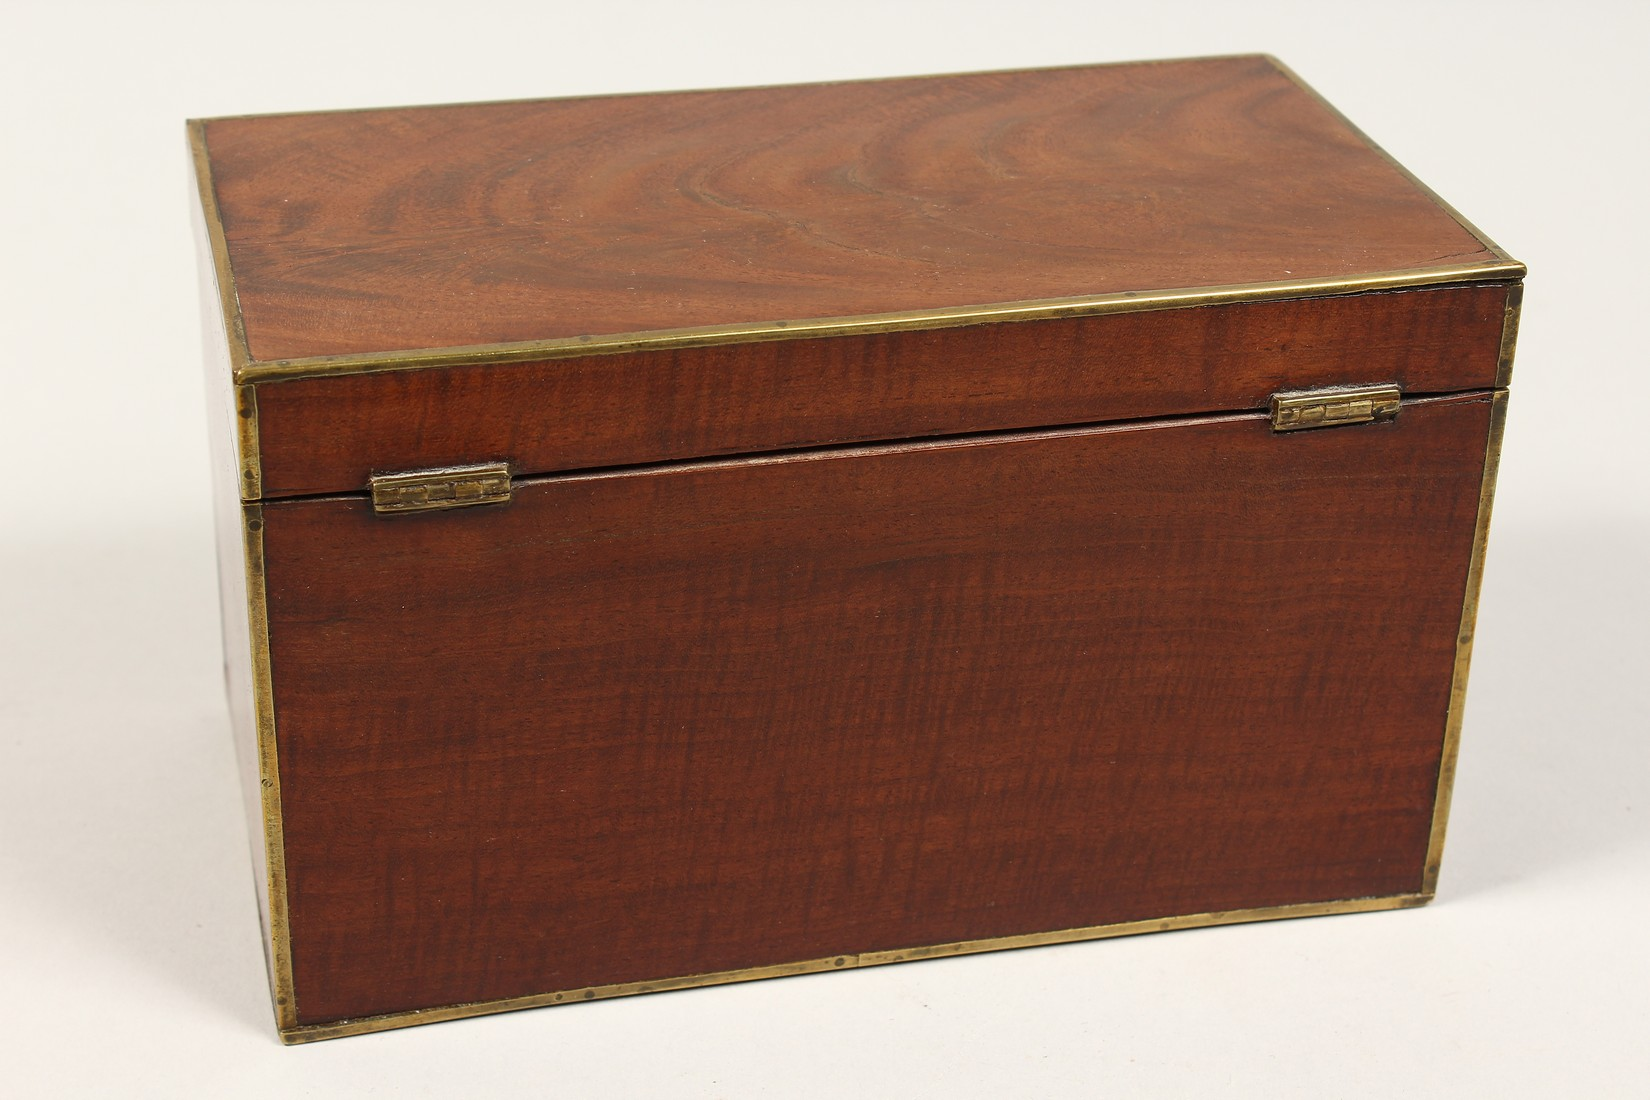 A REGENCY MAHOGANY TWO DIVISION TEA CADDY with brass stringing. 8ins long - Image 3 of 7